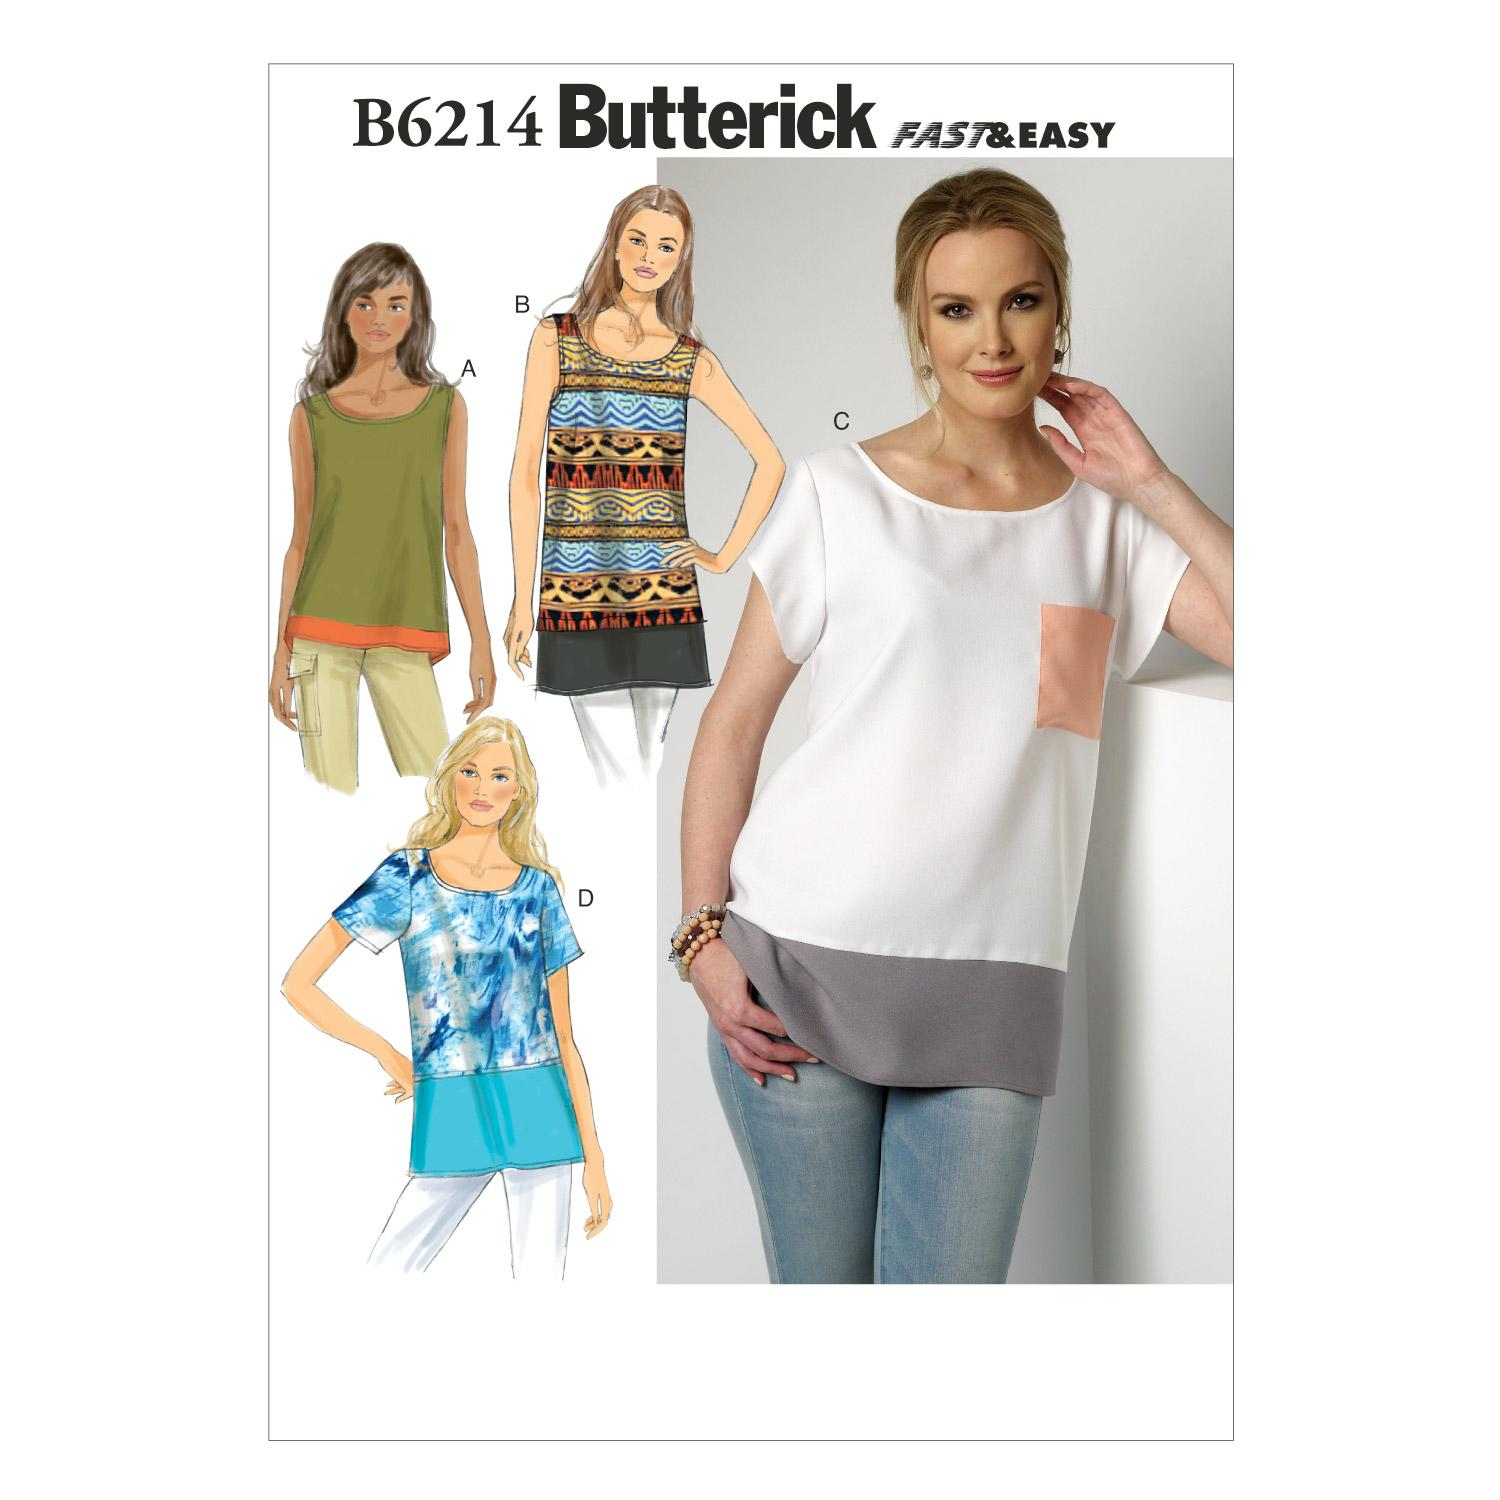 Butterick B6214 Misses' Top